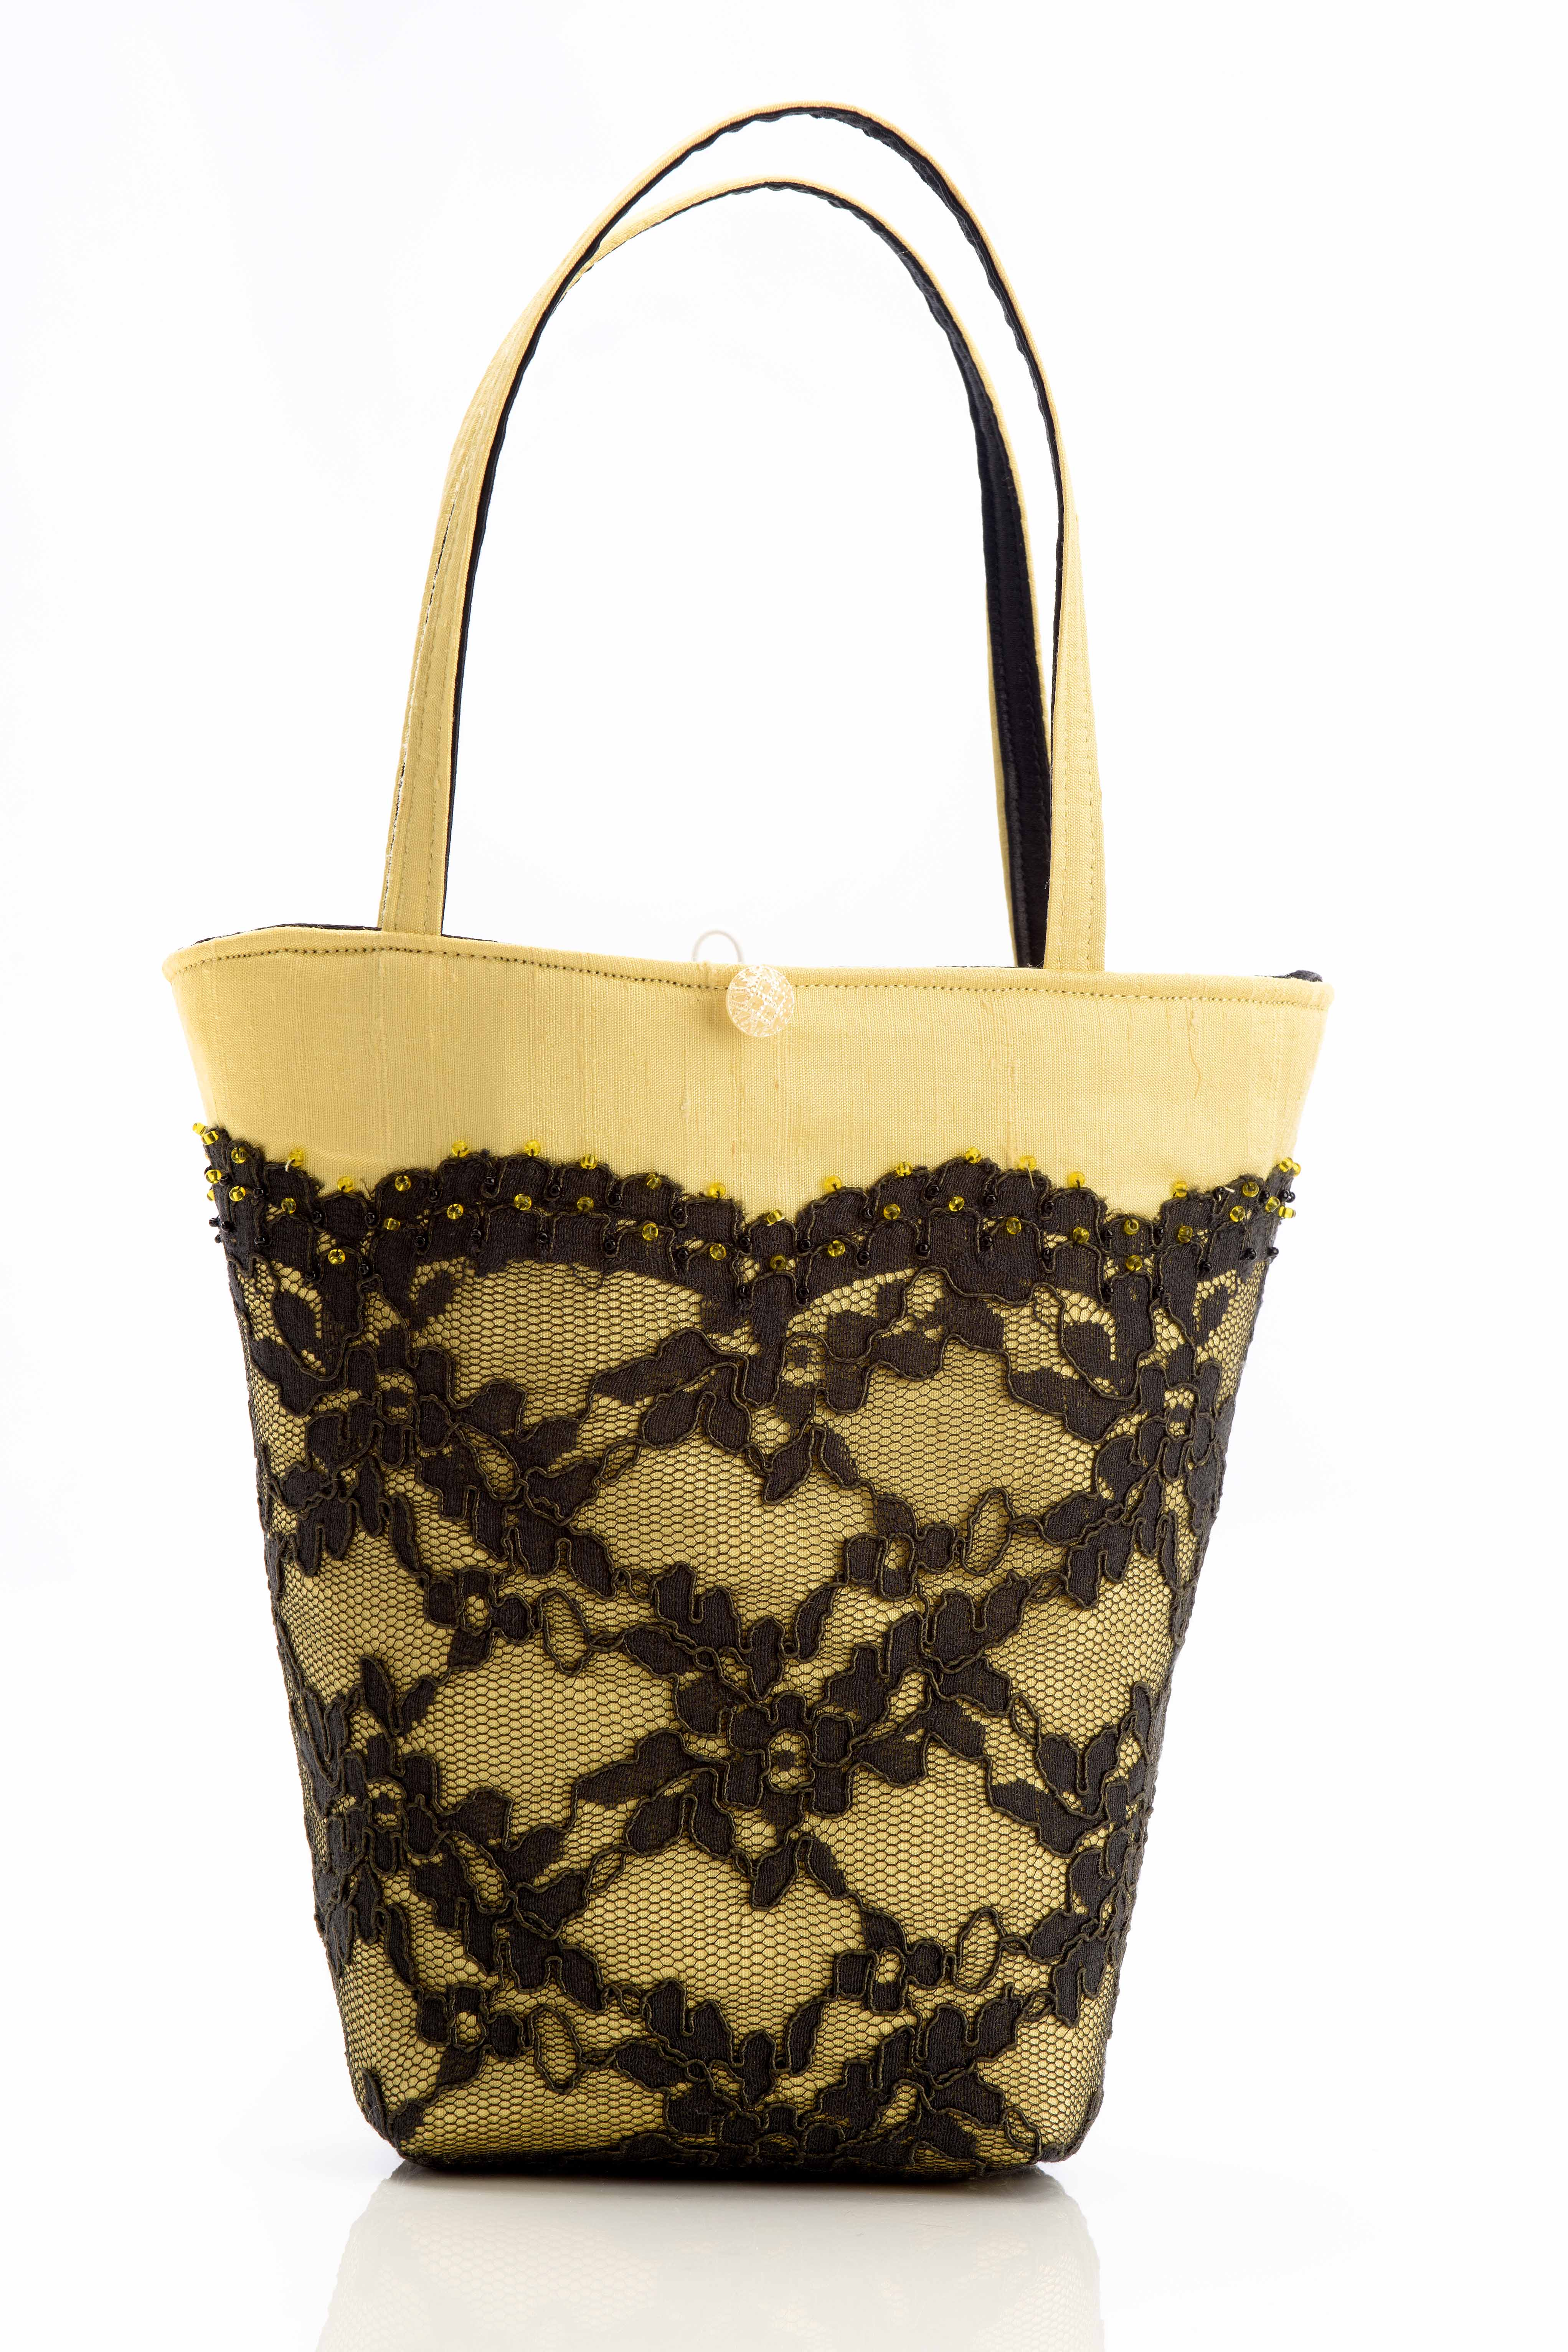 yellow silk handbag with black lace and beads